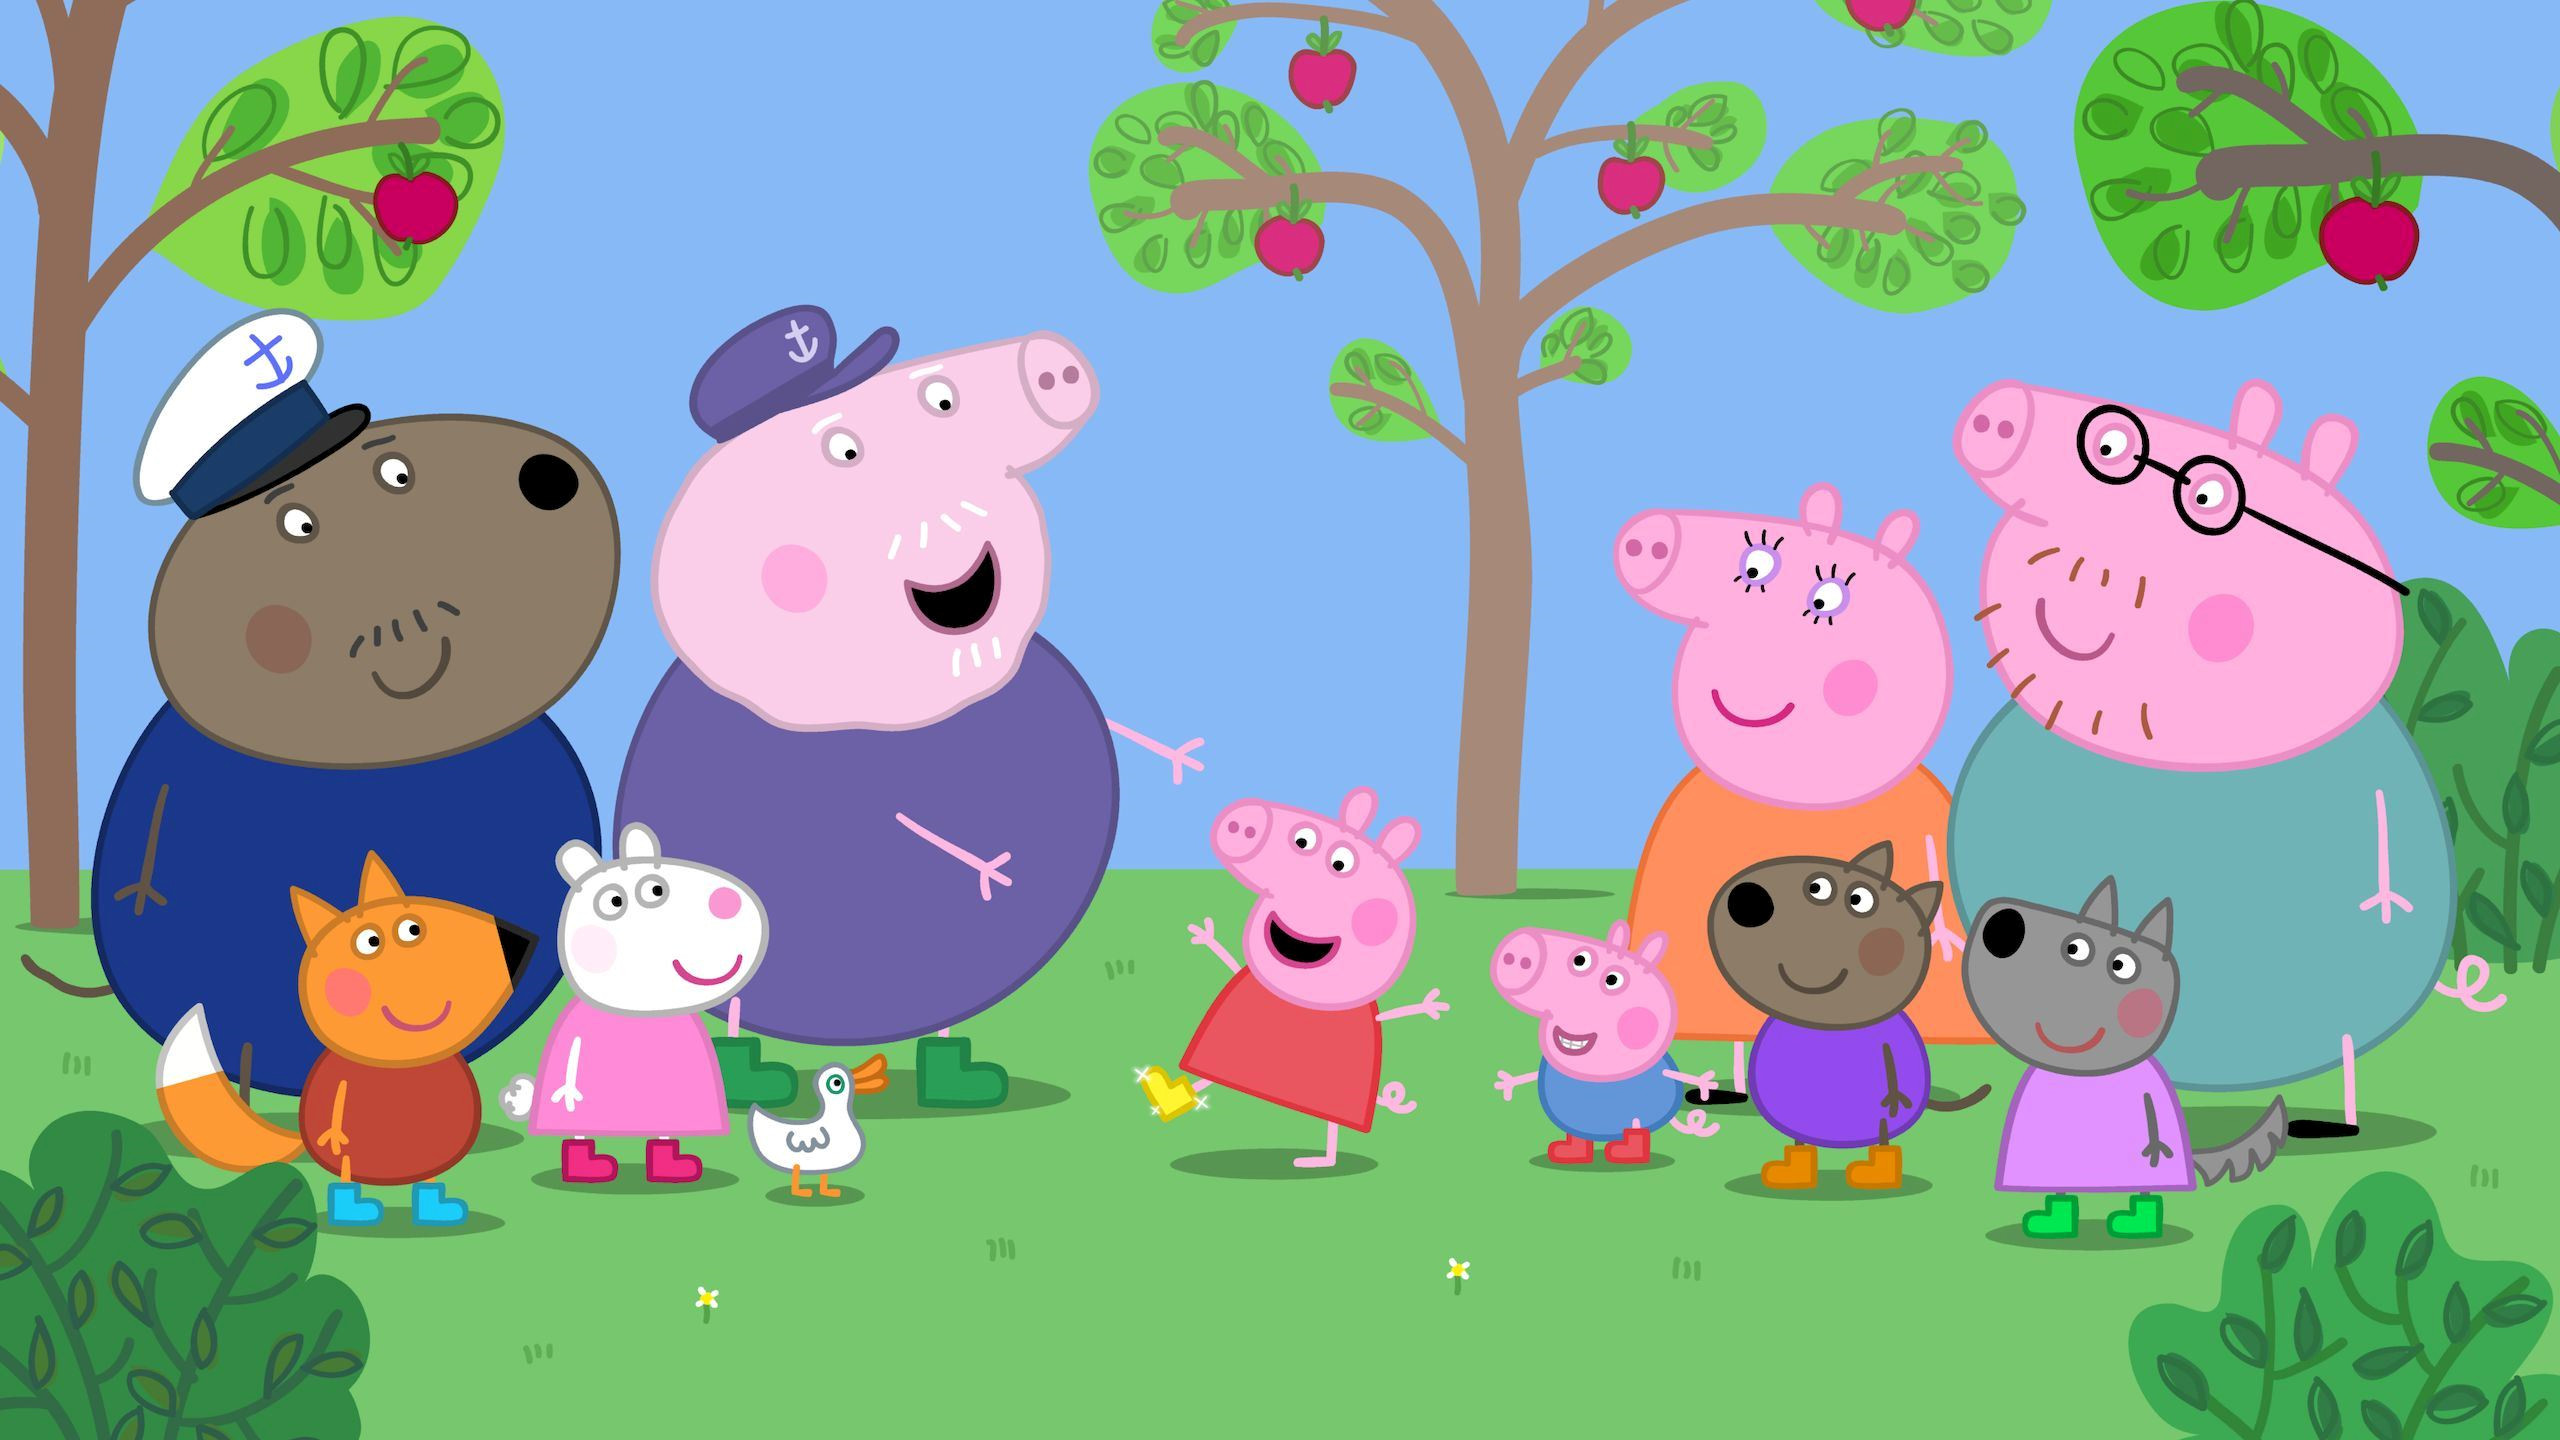 Res: 2560x1440, Peppa Pig Wallpapers 5 - 2560 X 1440